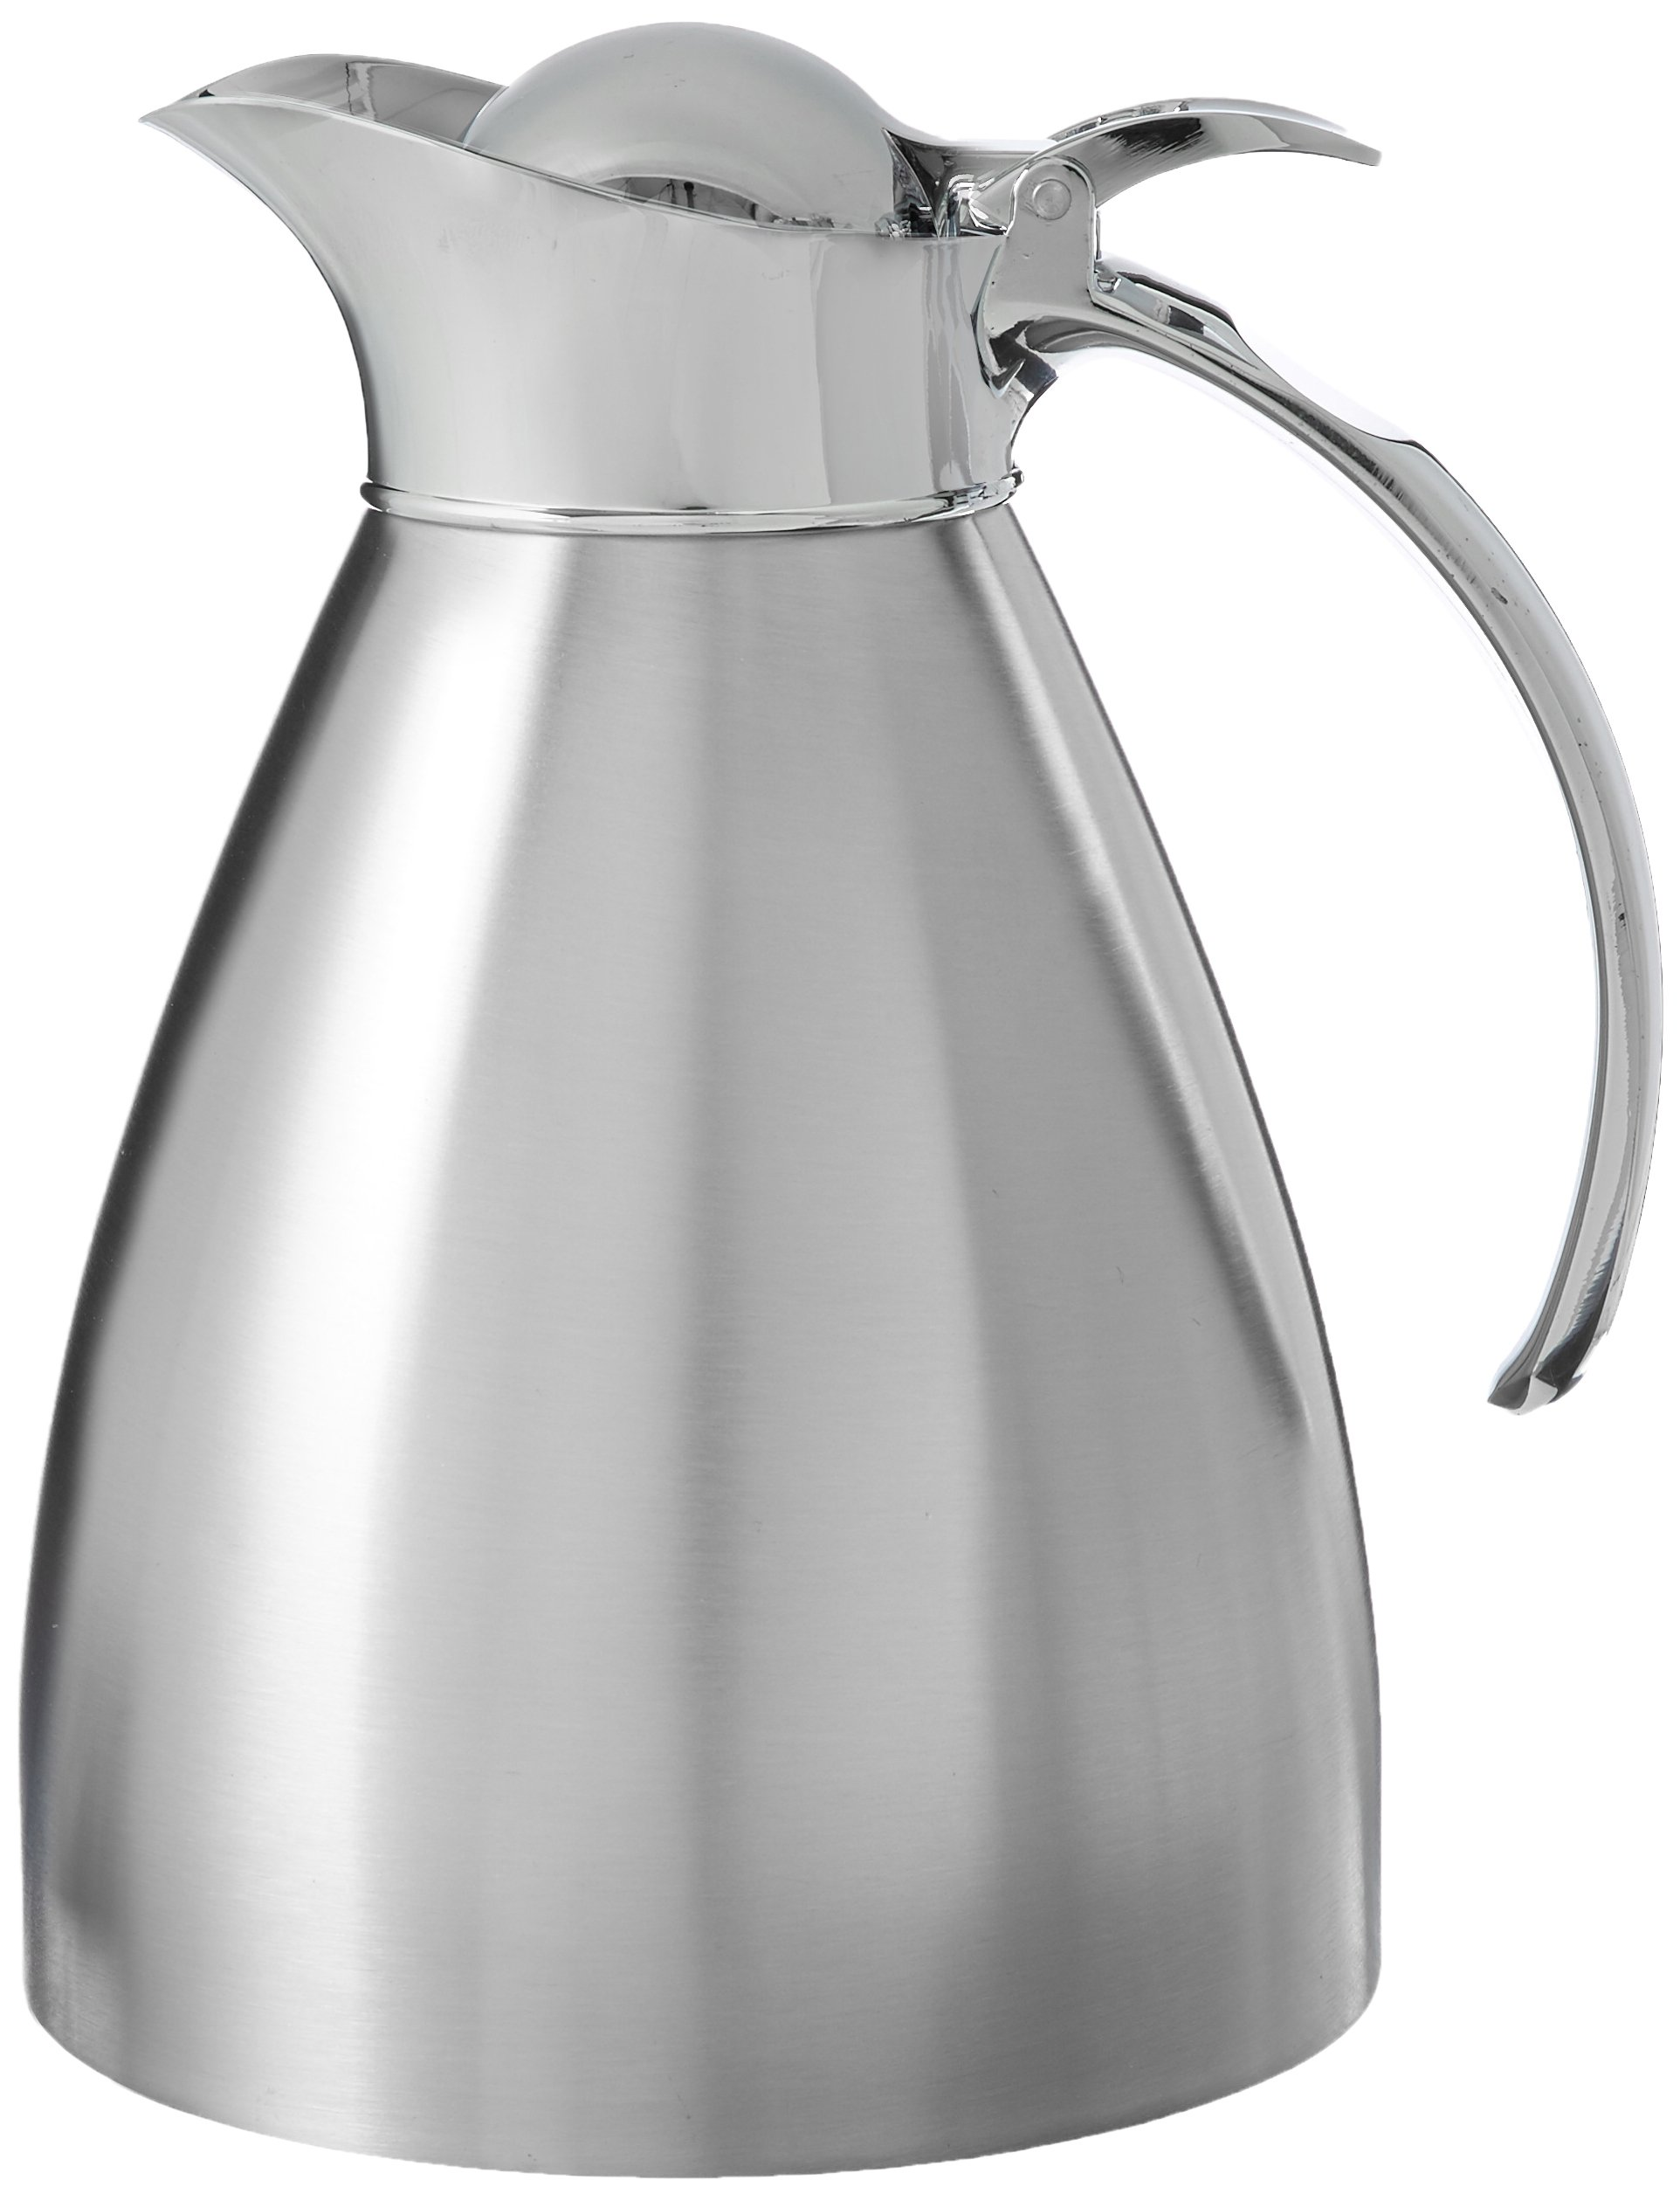 Service Ideas 98110BS Stainless Lined Vacuum Insulated Carafe with Stopper Lid, 1 Liter (33.8 oz.), Brushed Stainless/Mirrored Accents